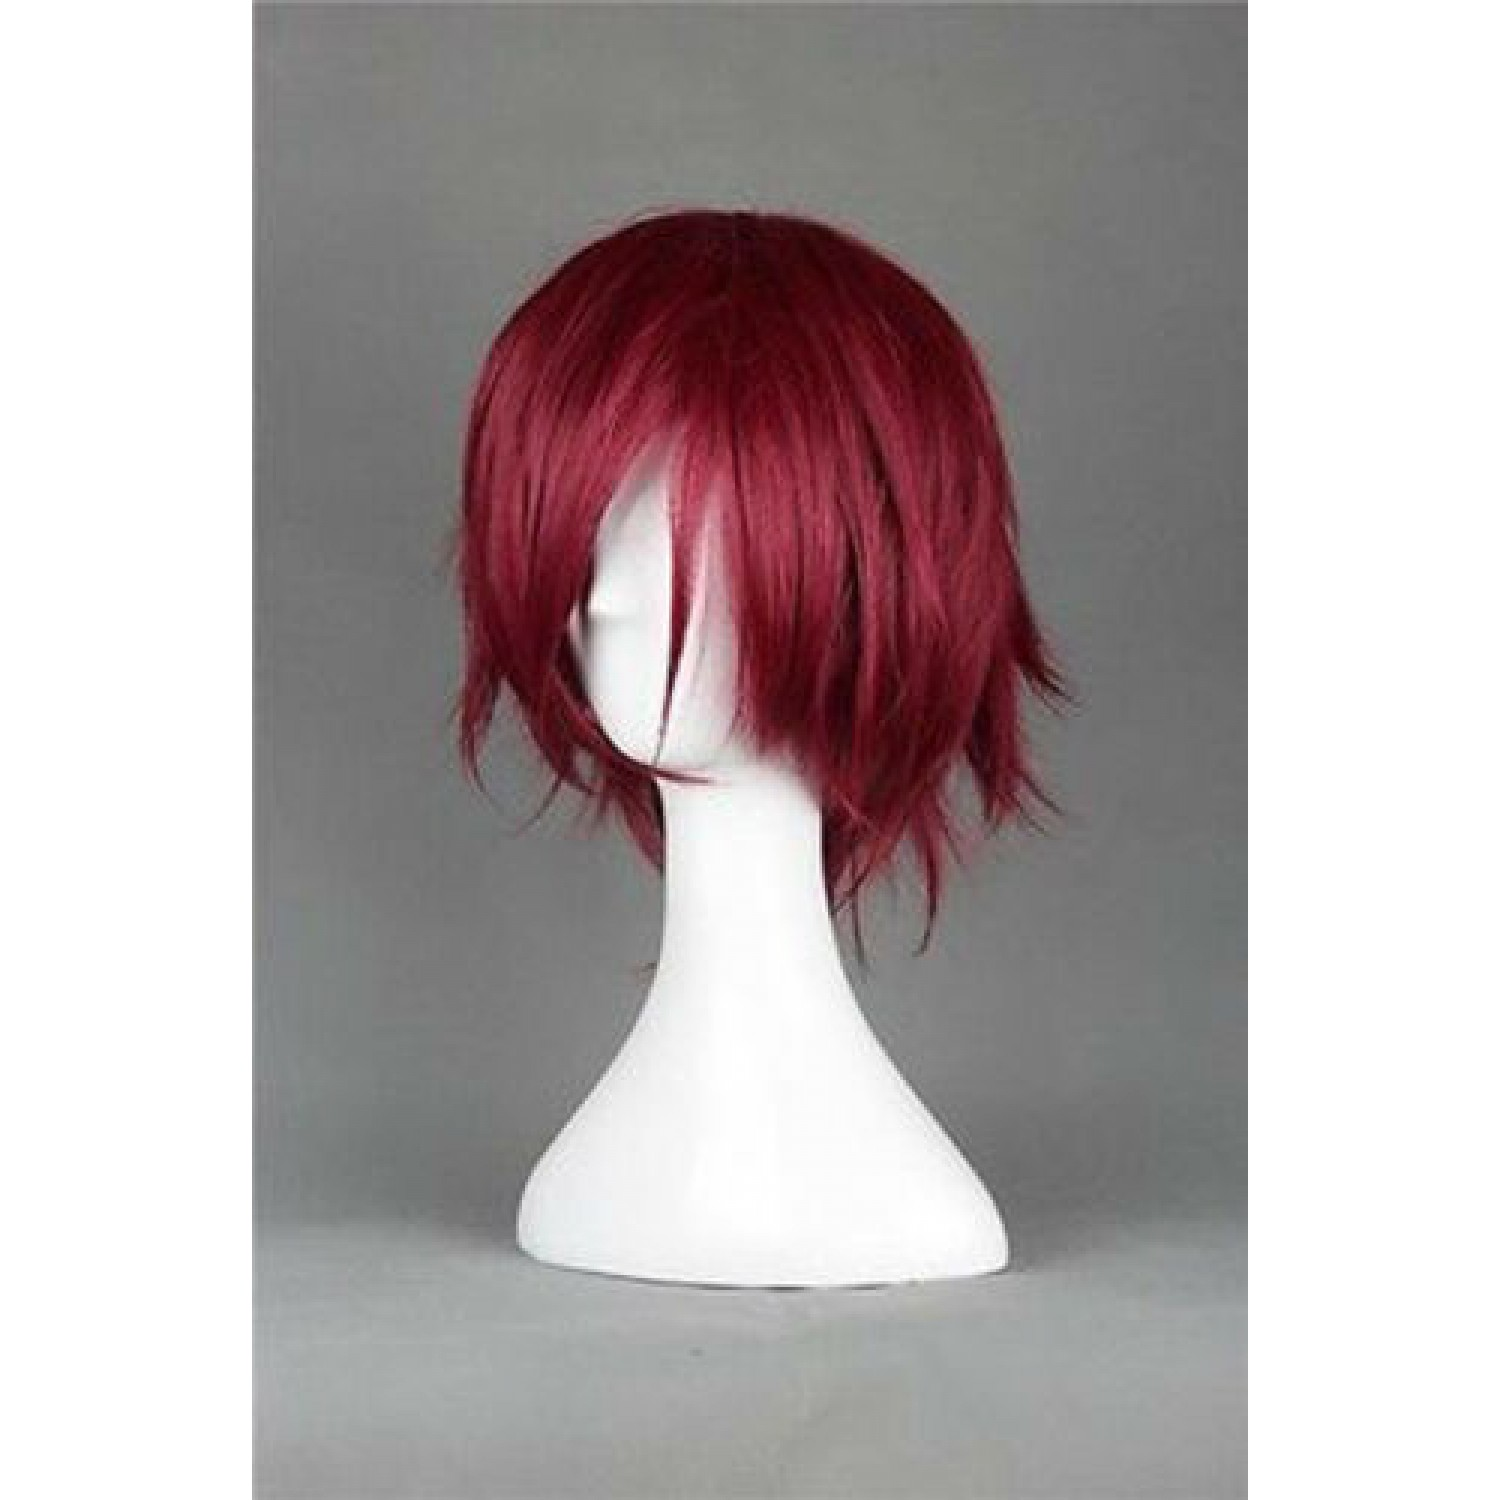 Free! Matsuoka Rin Wine Red Short Anime Cosplay Wig